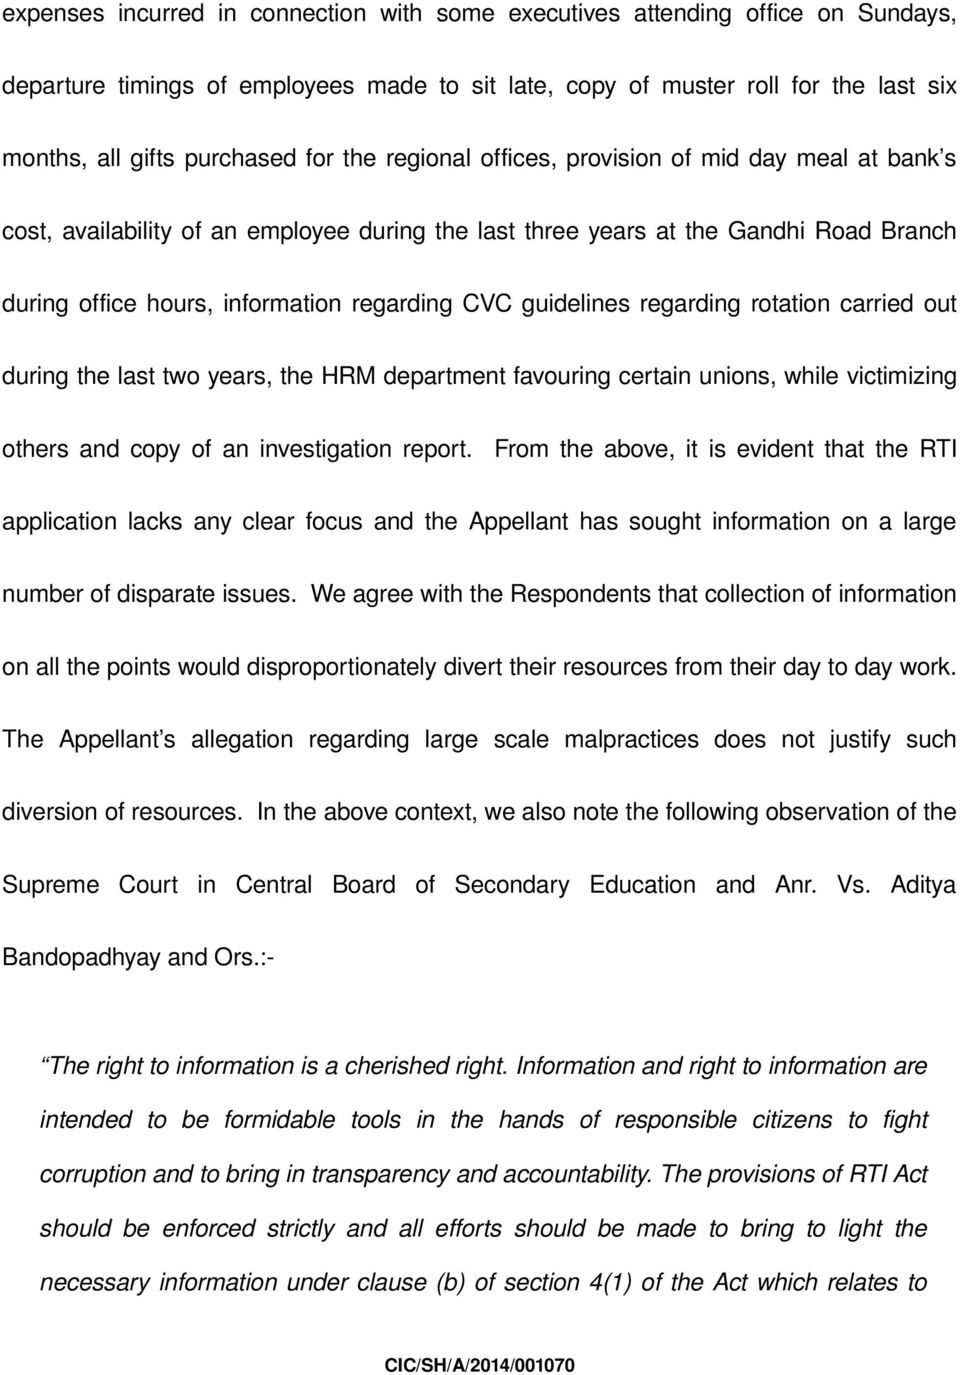 guidelines regarding rotation carried out during the last two years, the HRM department favouring certain unions, while victimizing others and copy of an investigation report.